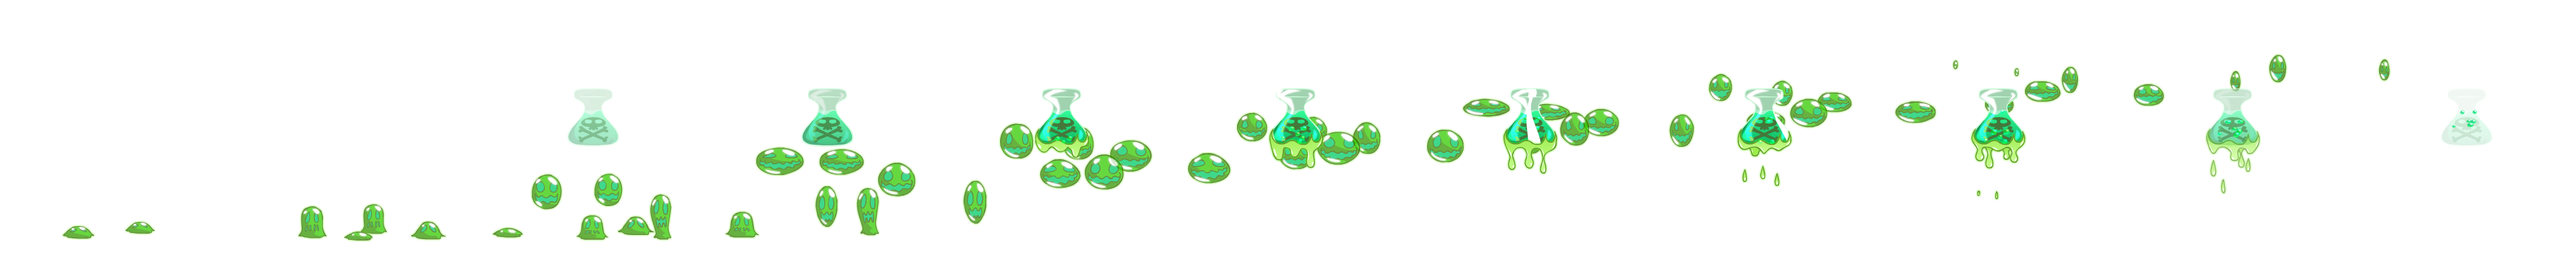 http://images.neopets.com/dome/statuses/poisoned-11-262kb.png